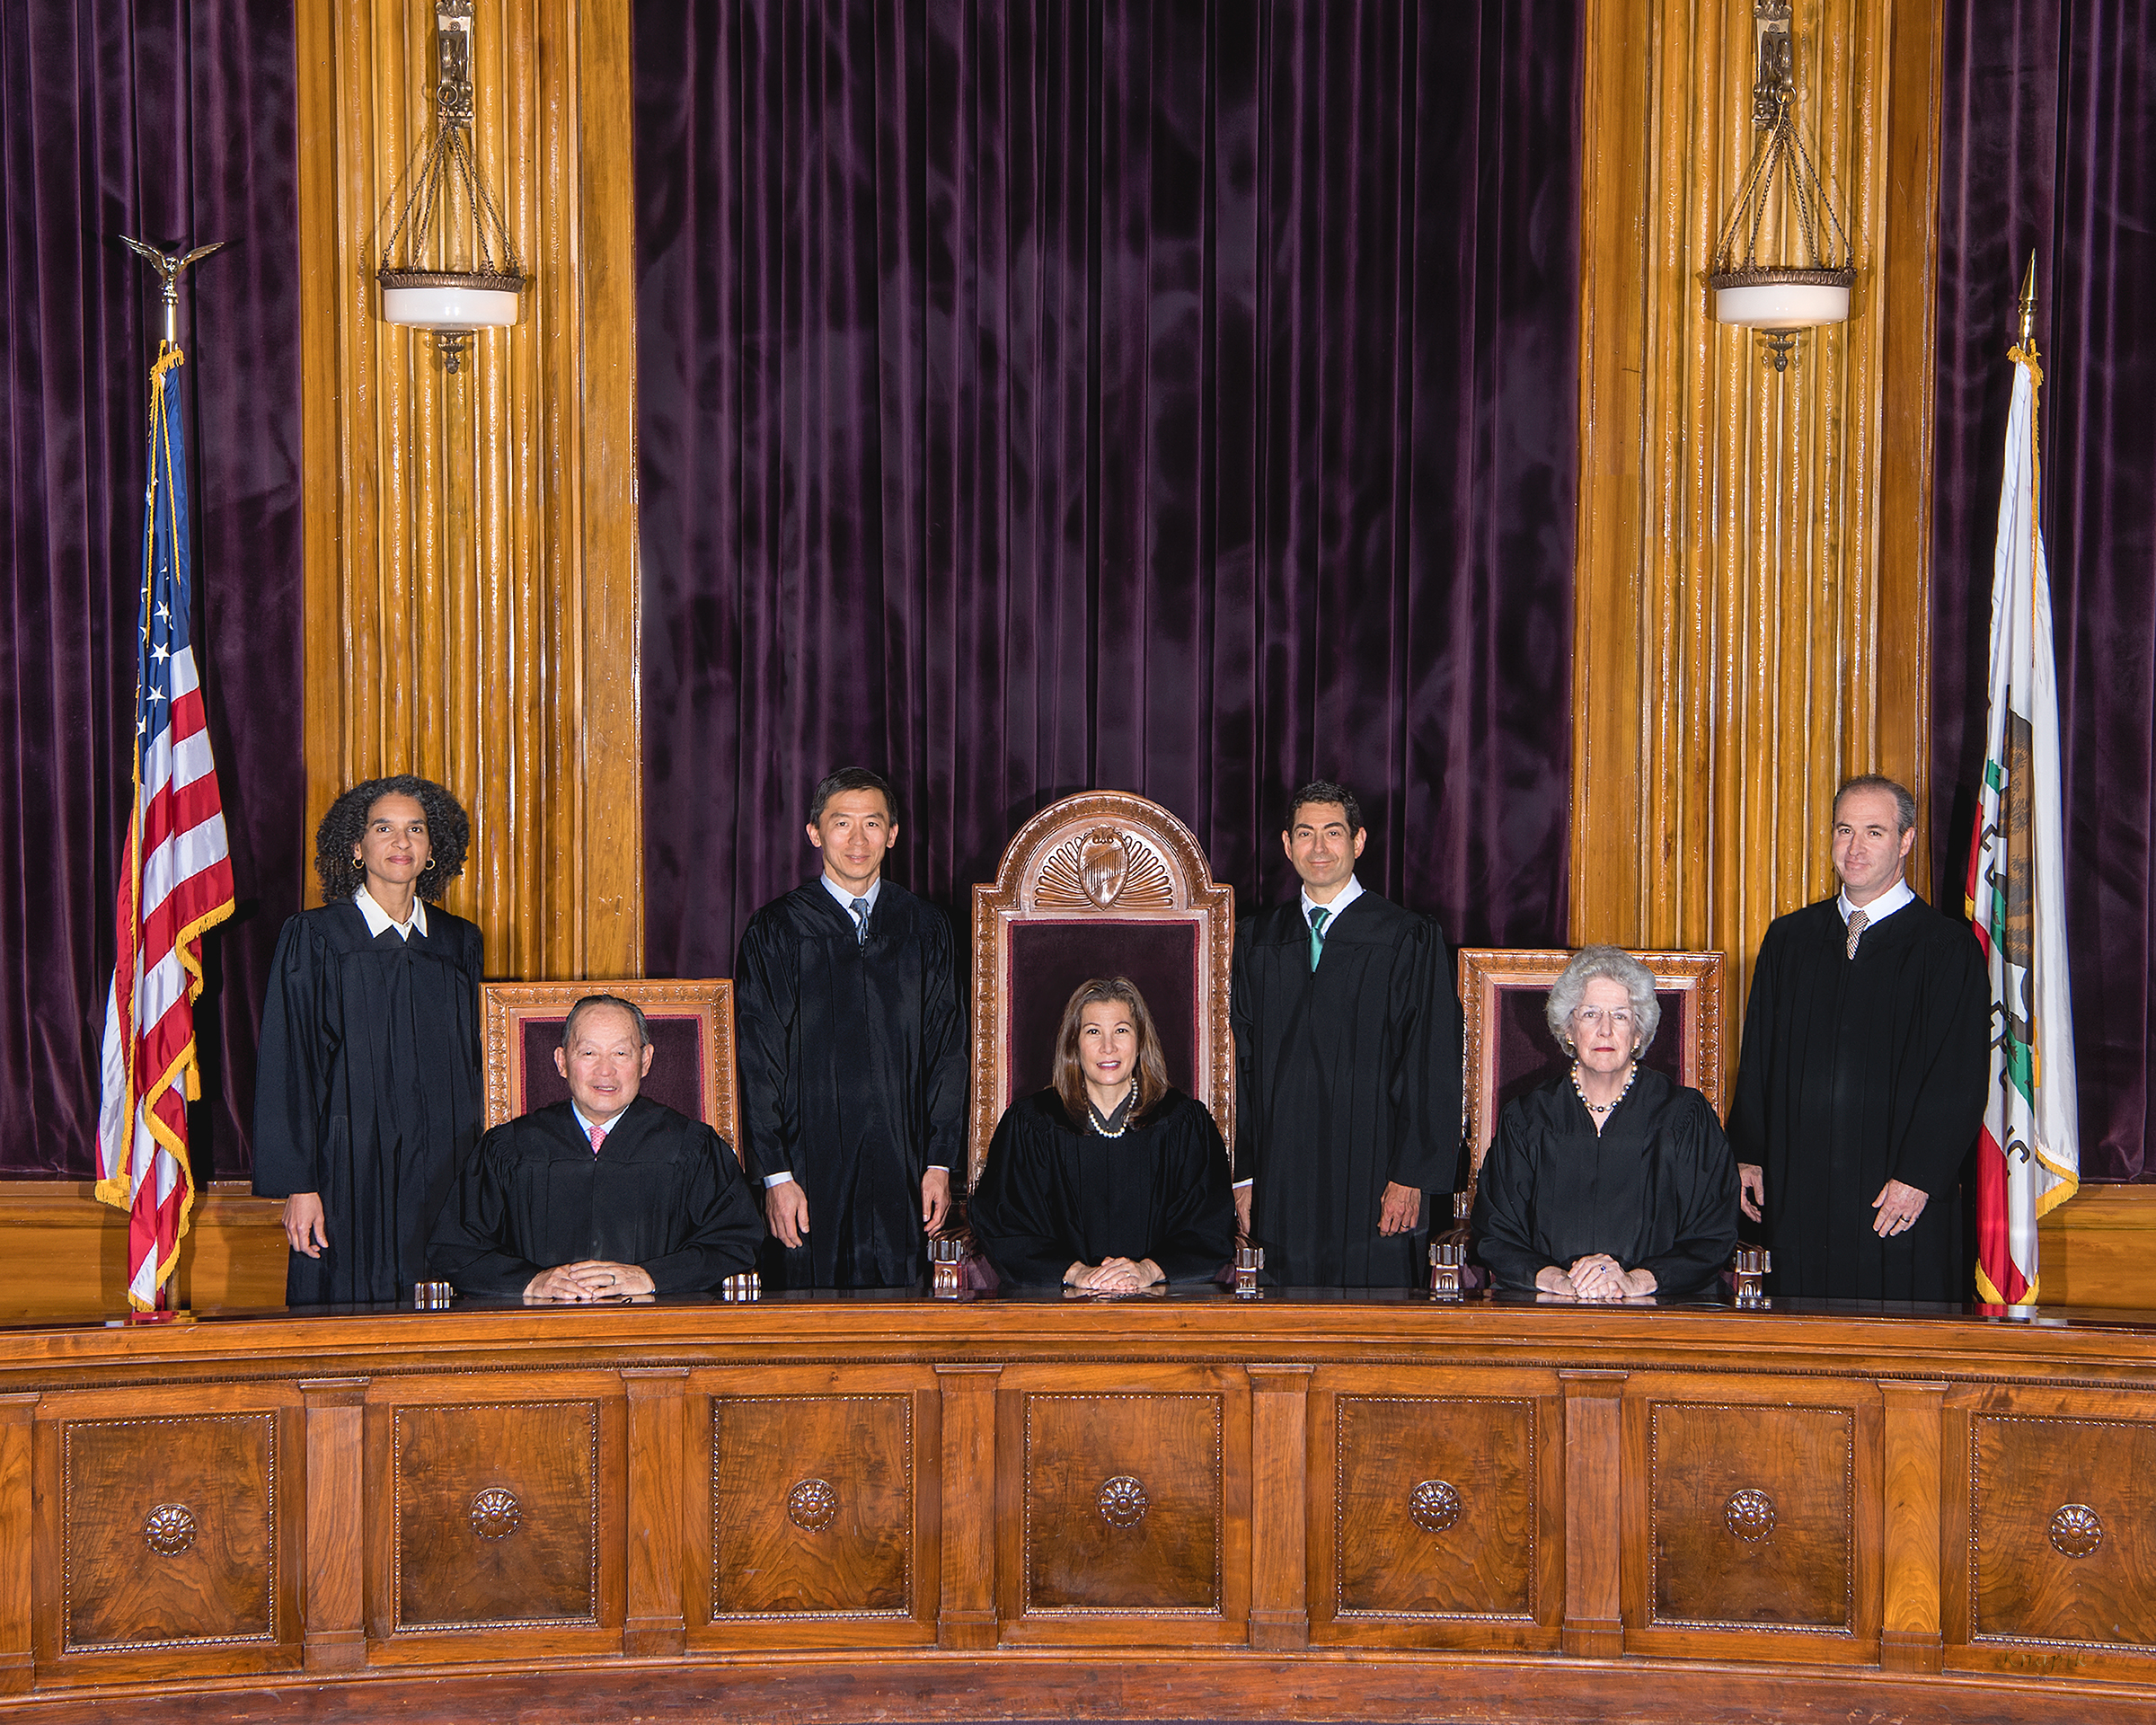 California Supreme Court Bench (2019)